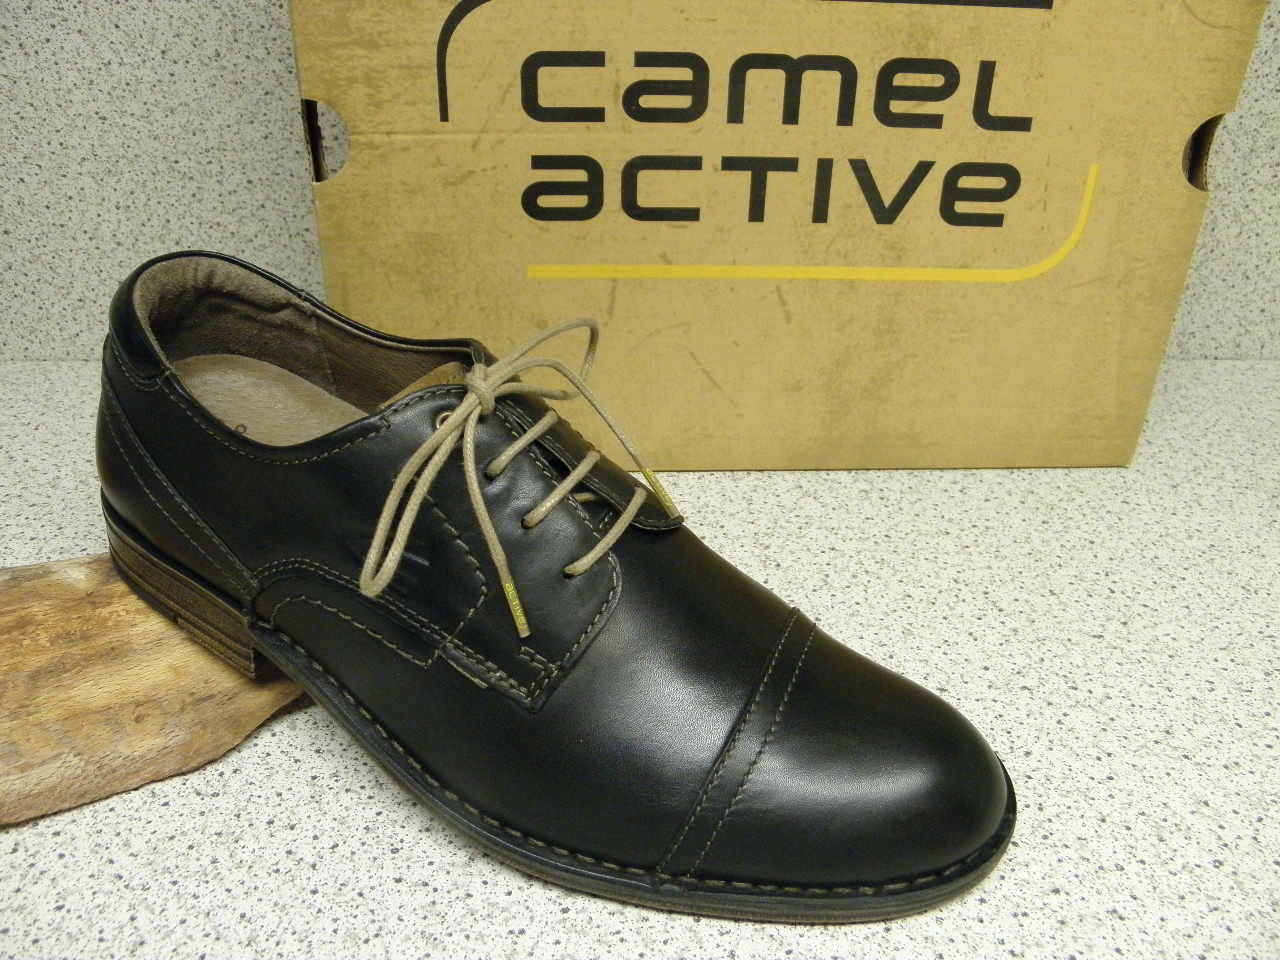 camel active bisher ®  SALE,  bisher active  129,95  ,  456.11.02 (C21) 07fa5d